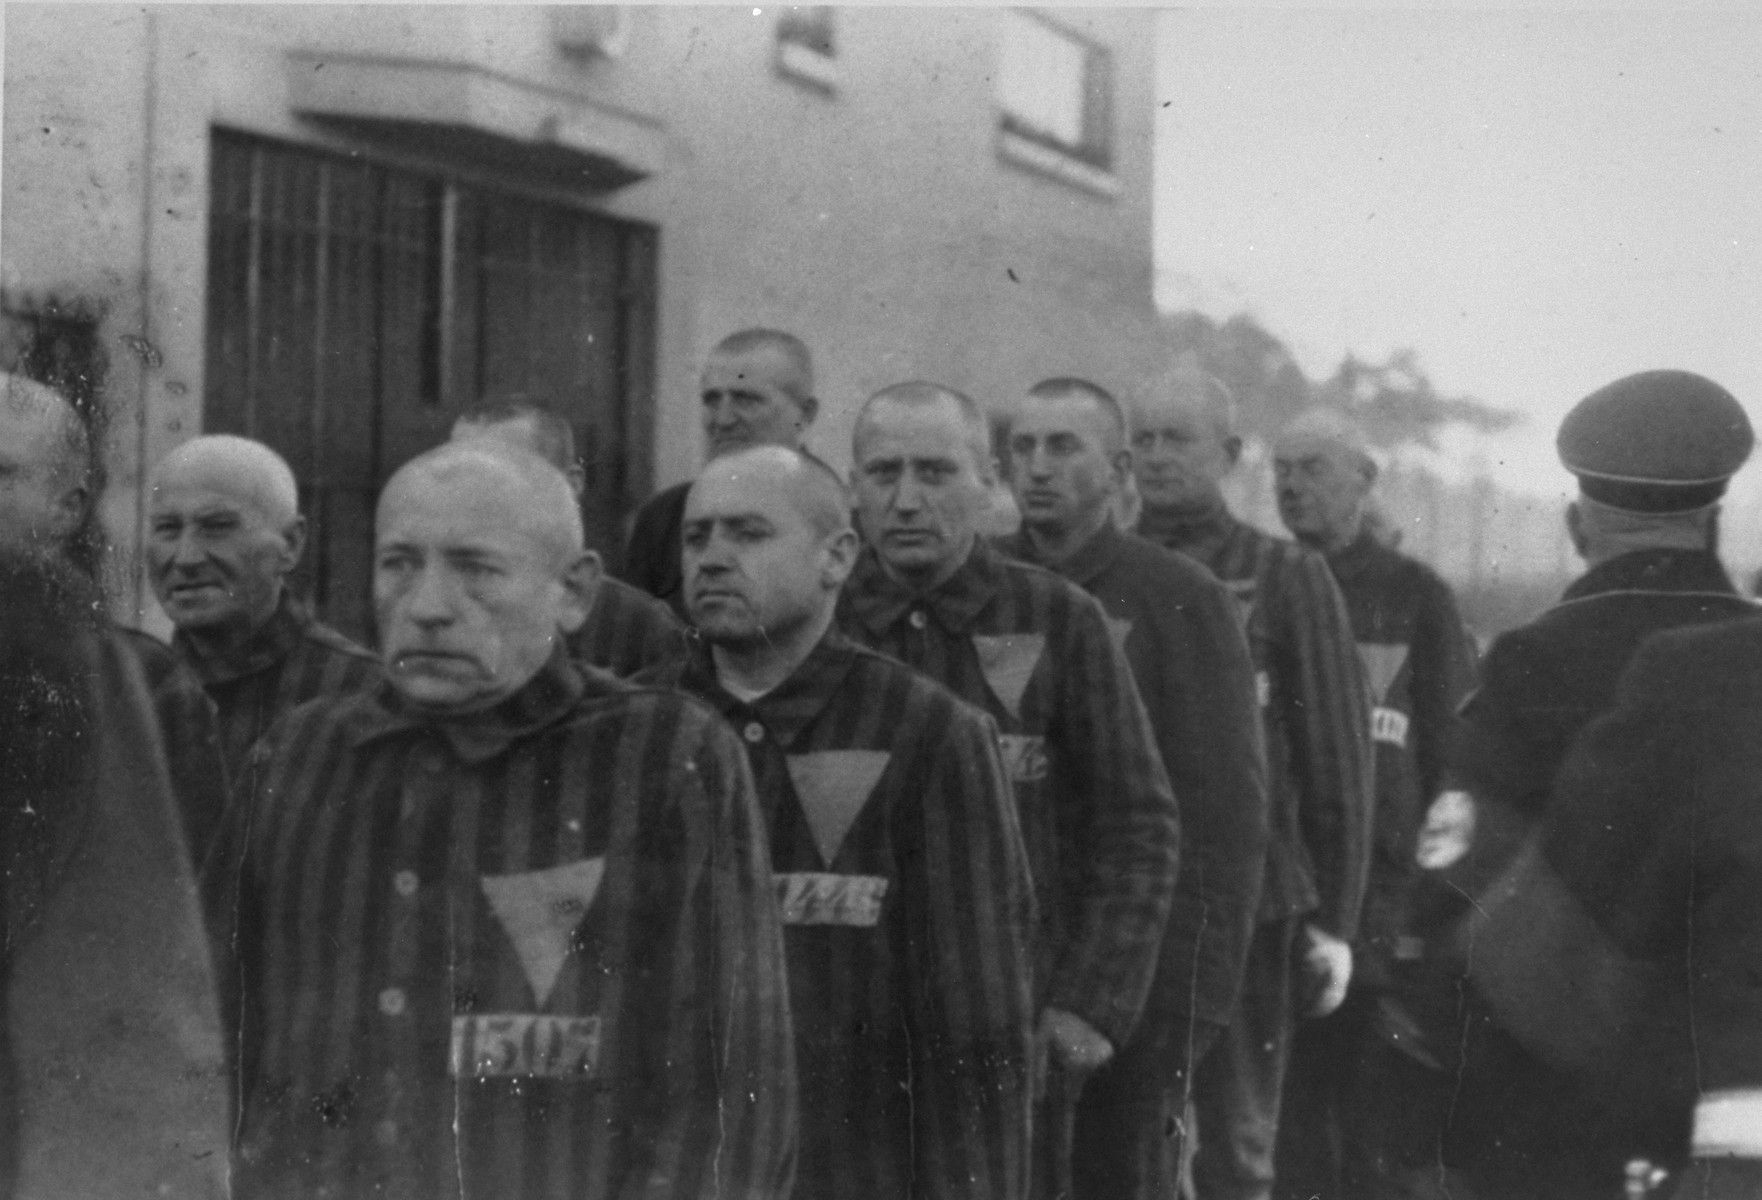 Sachsenhausen prisoners, wearing uniforms with triangular badges, stand in columns under the supervision of a camp guard.